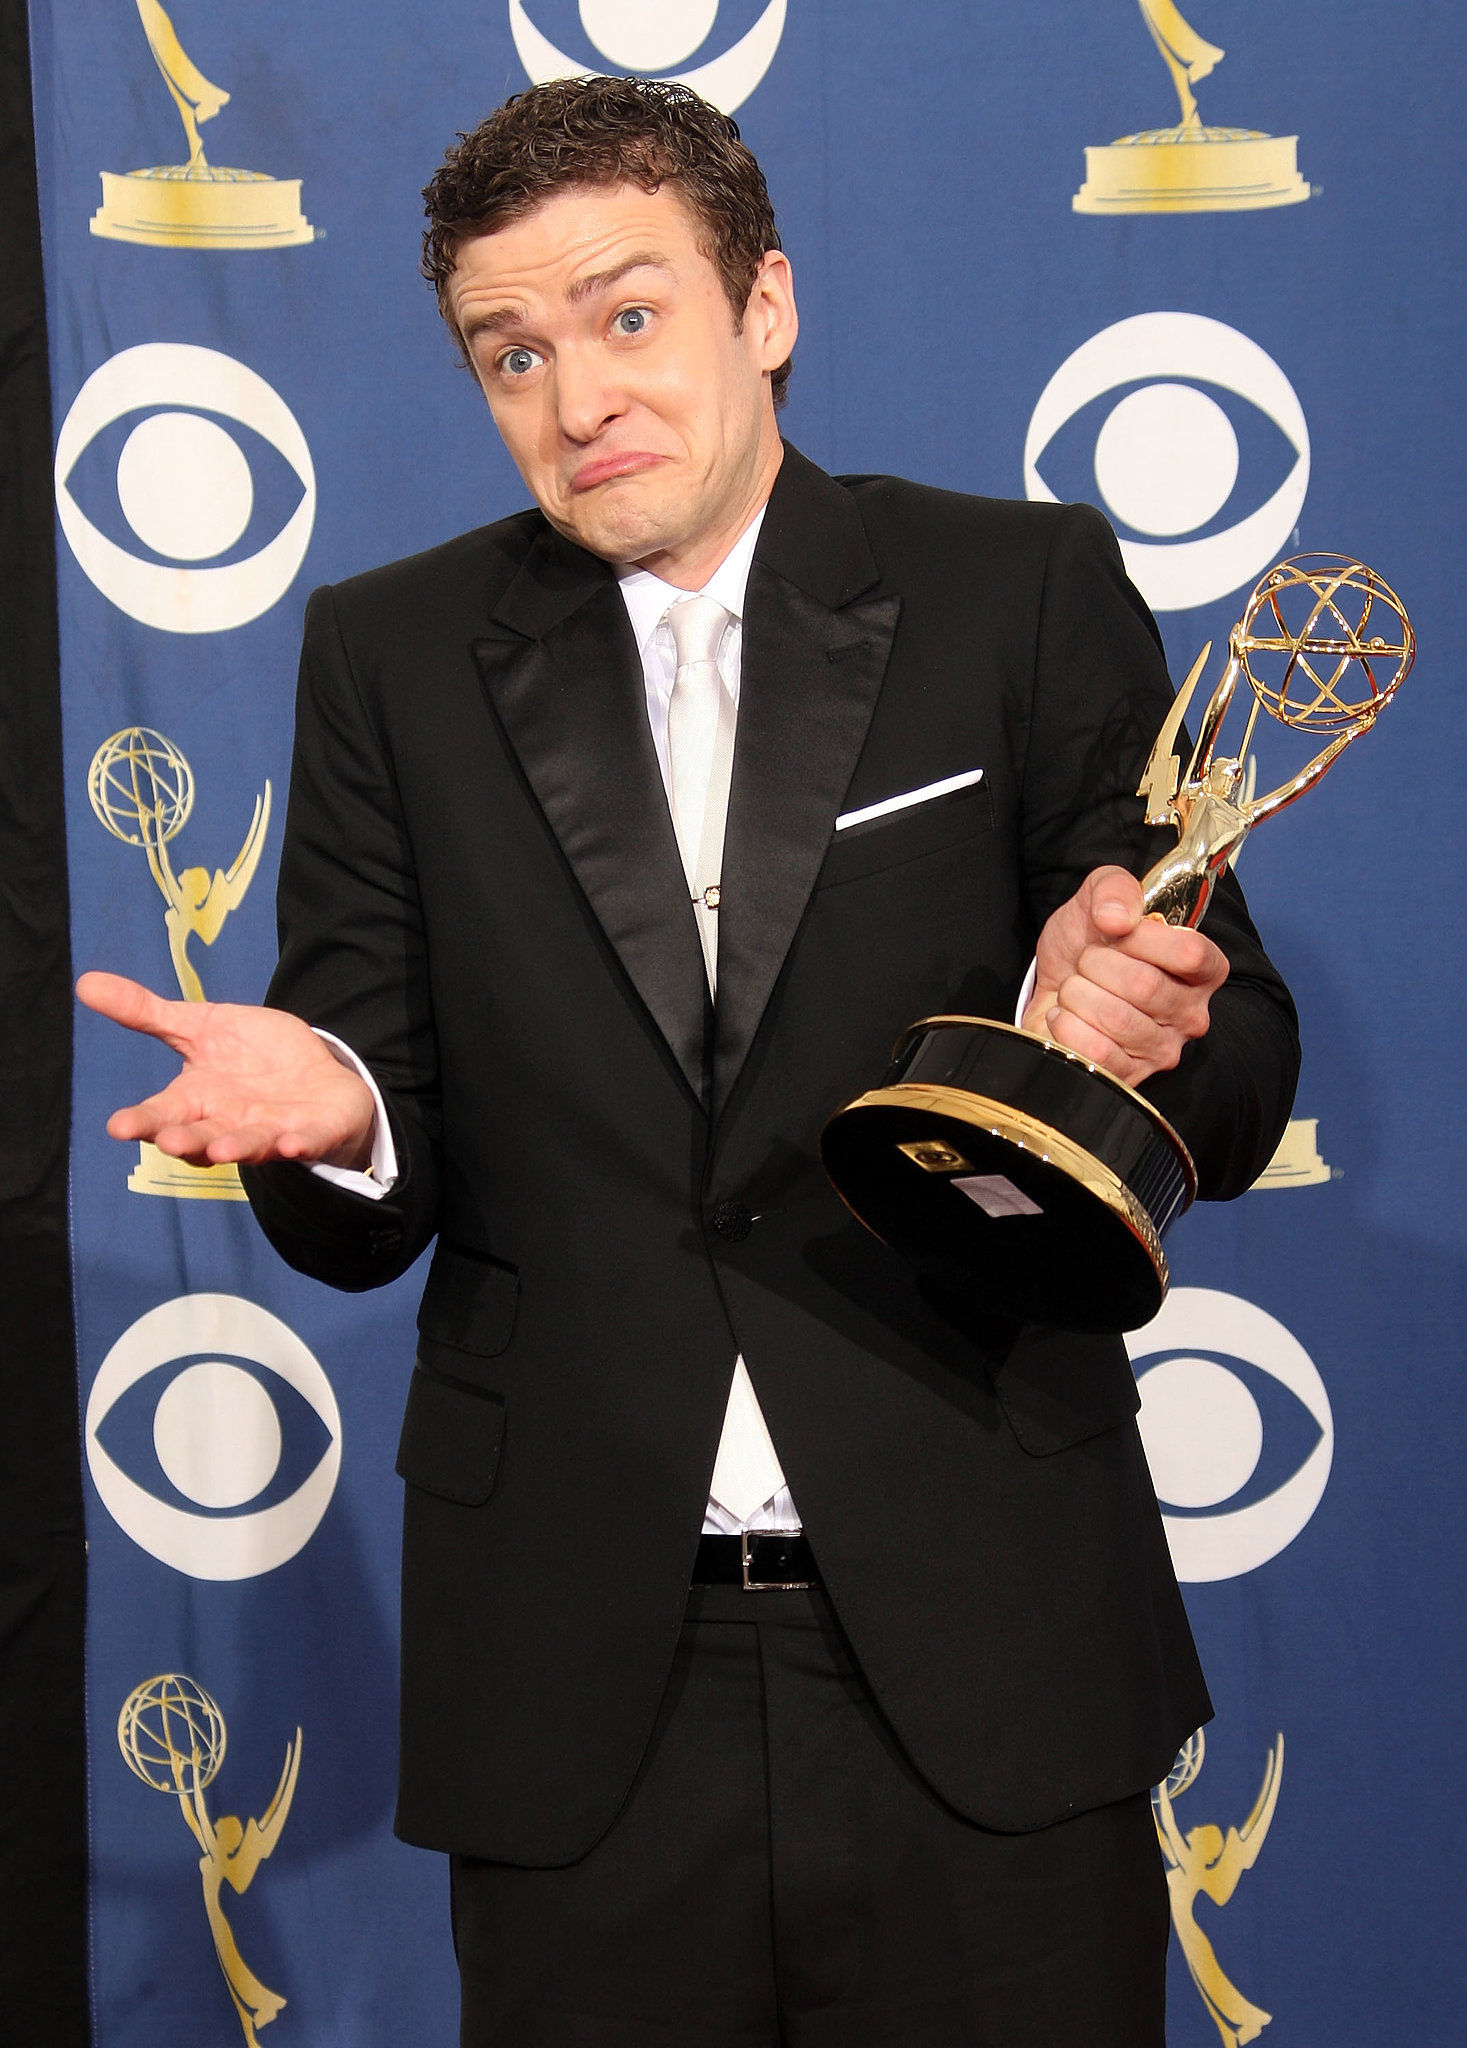 Justin Timberlake took home an Emmy for his work on SNL in 2009.